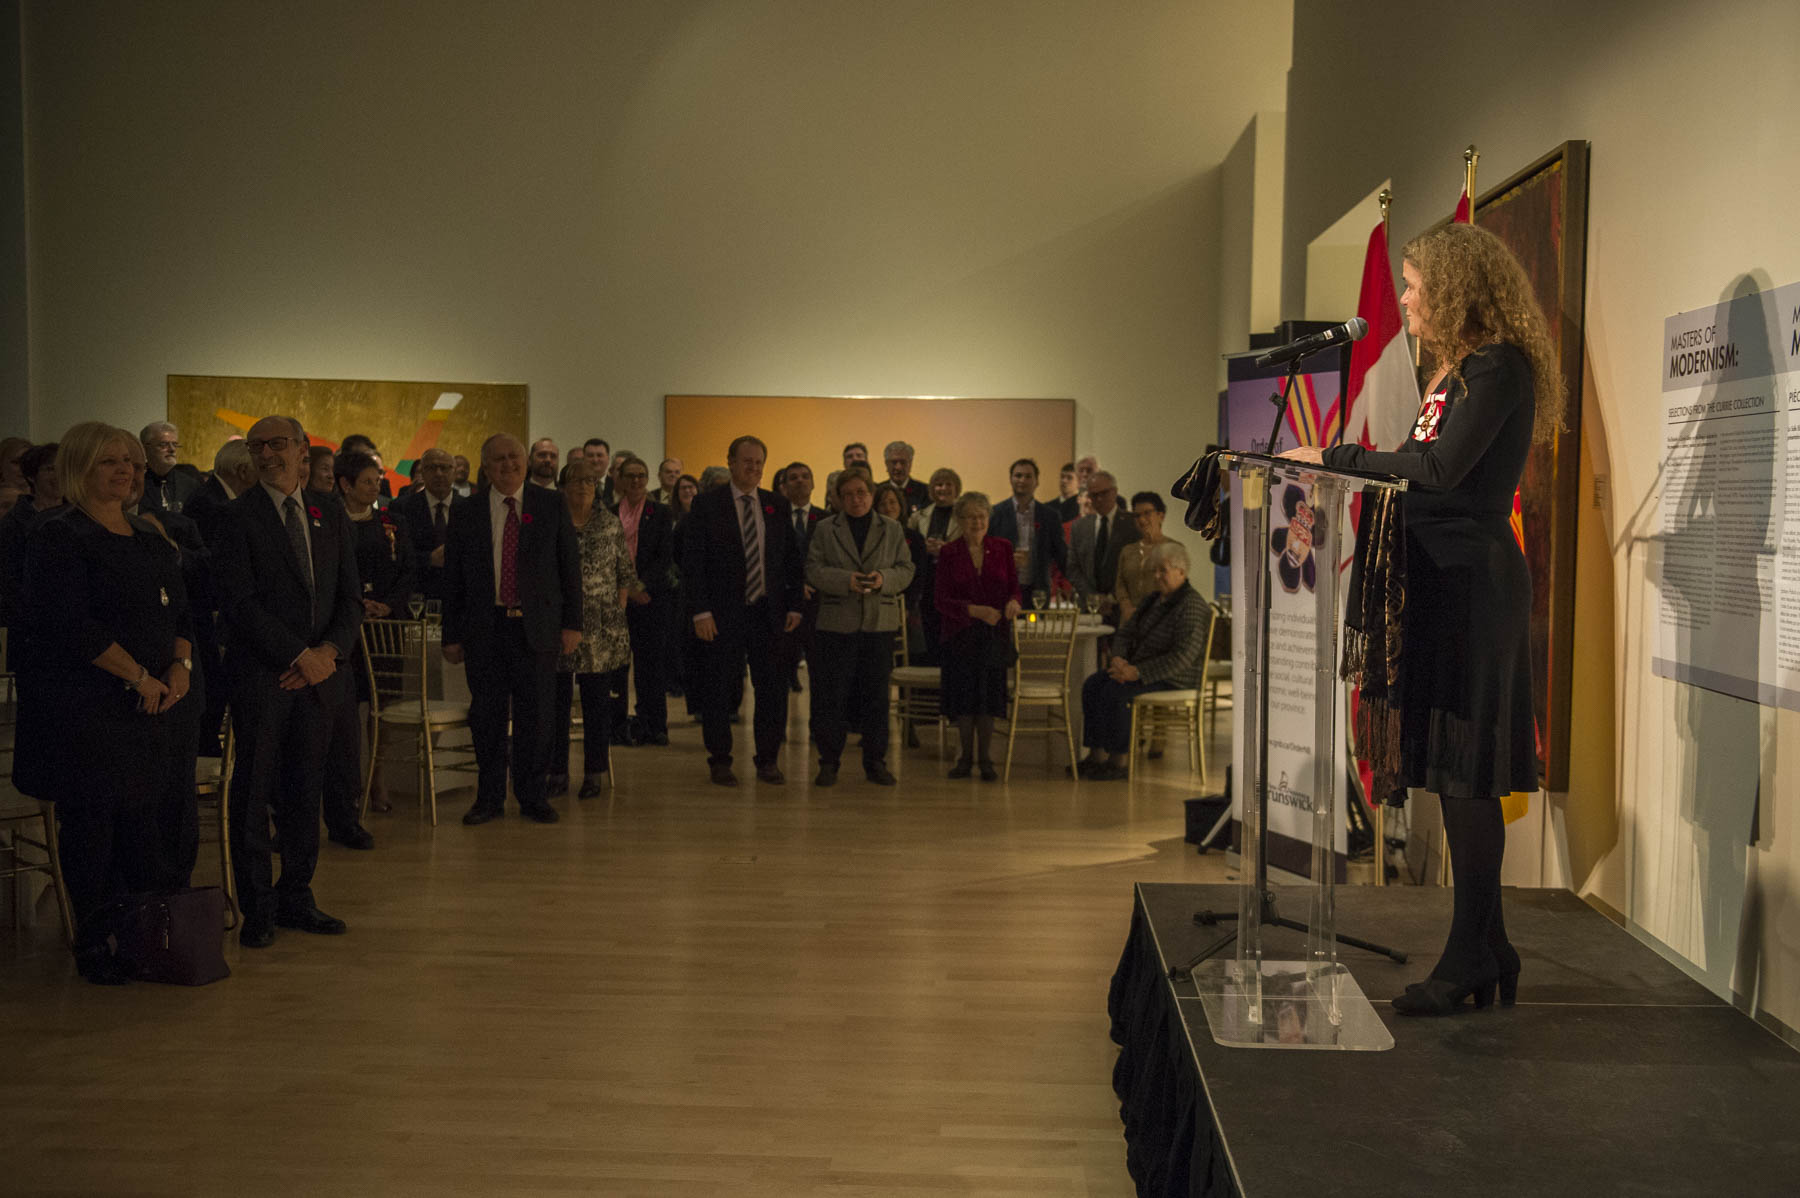 In the evening, Her Excellency delivered remarks at a reception in celebration of the 150th anniversary of Canadian confederation.